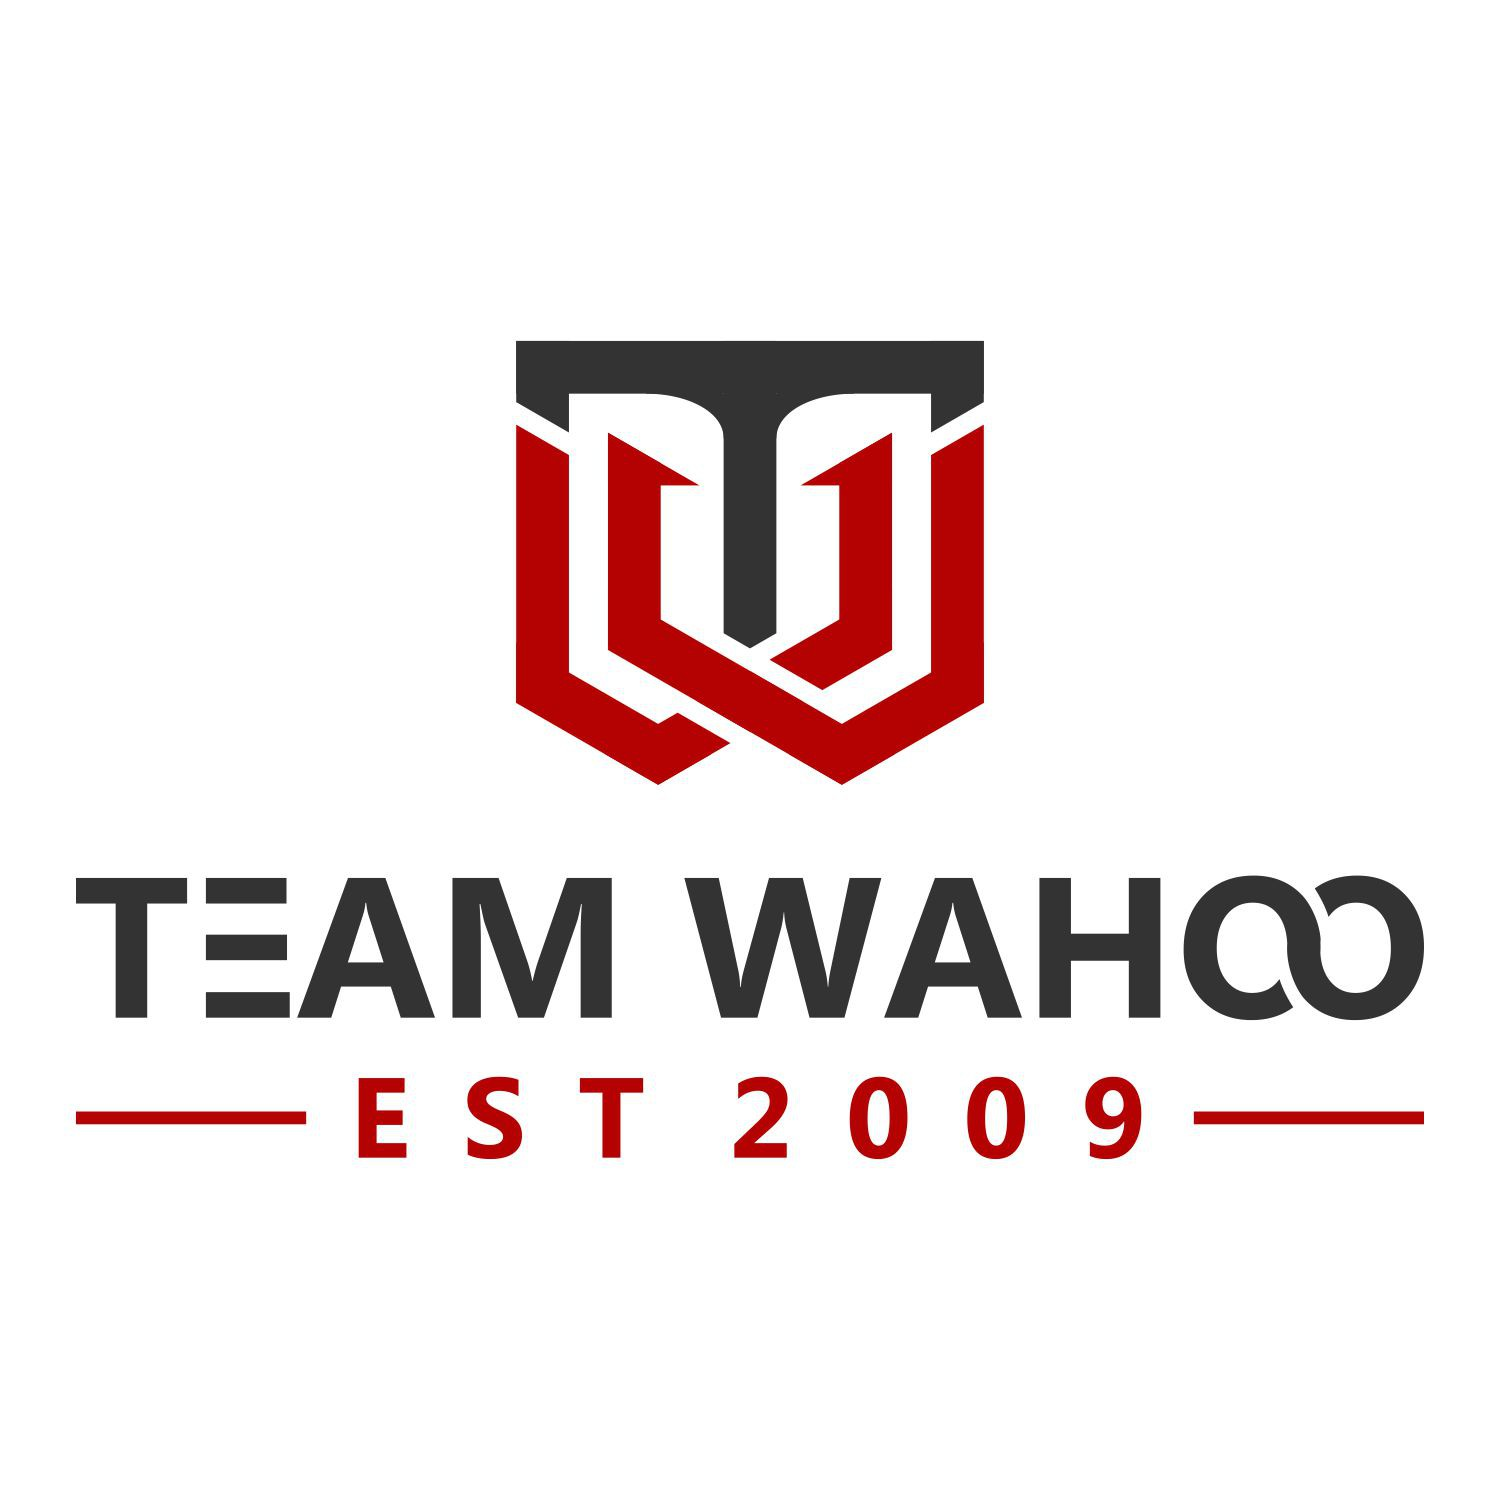 We need a powerful design with a timeless logo for our adventure racing team. Make people say WAHOO